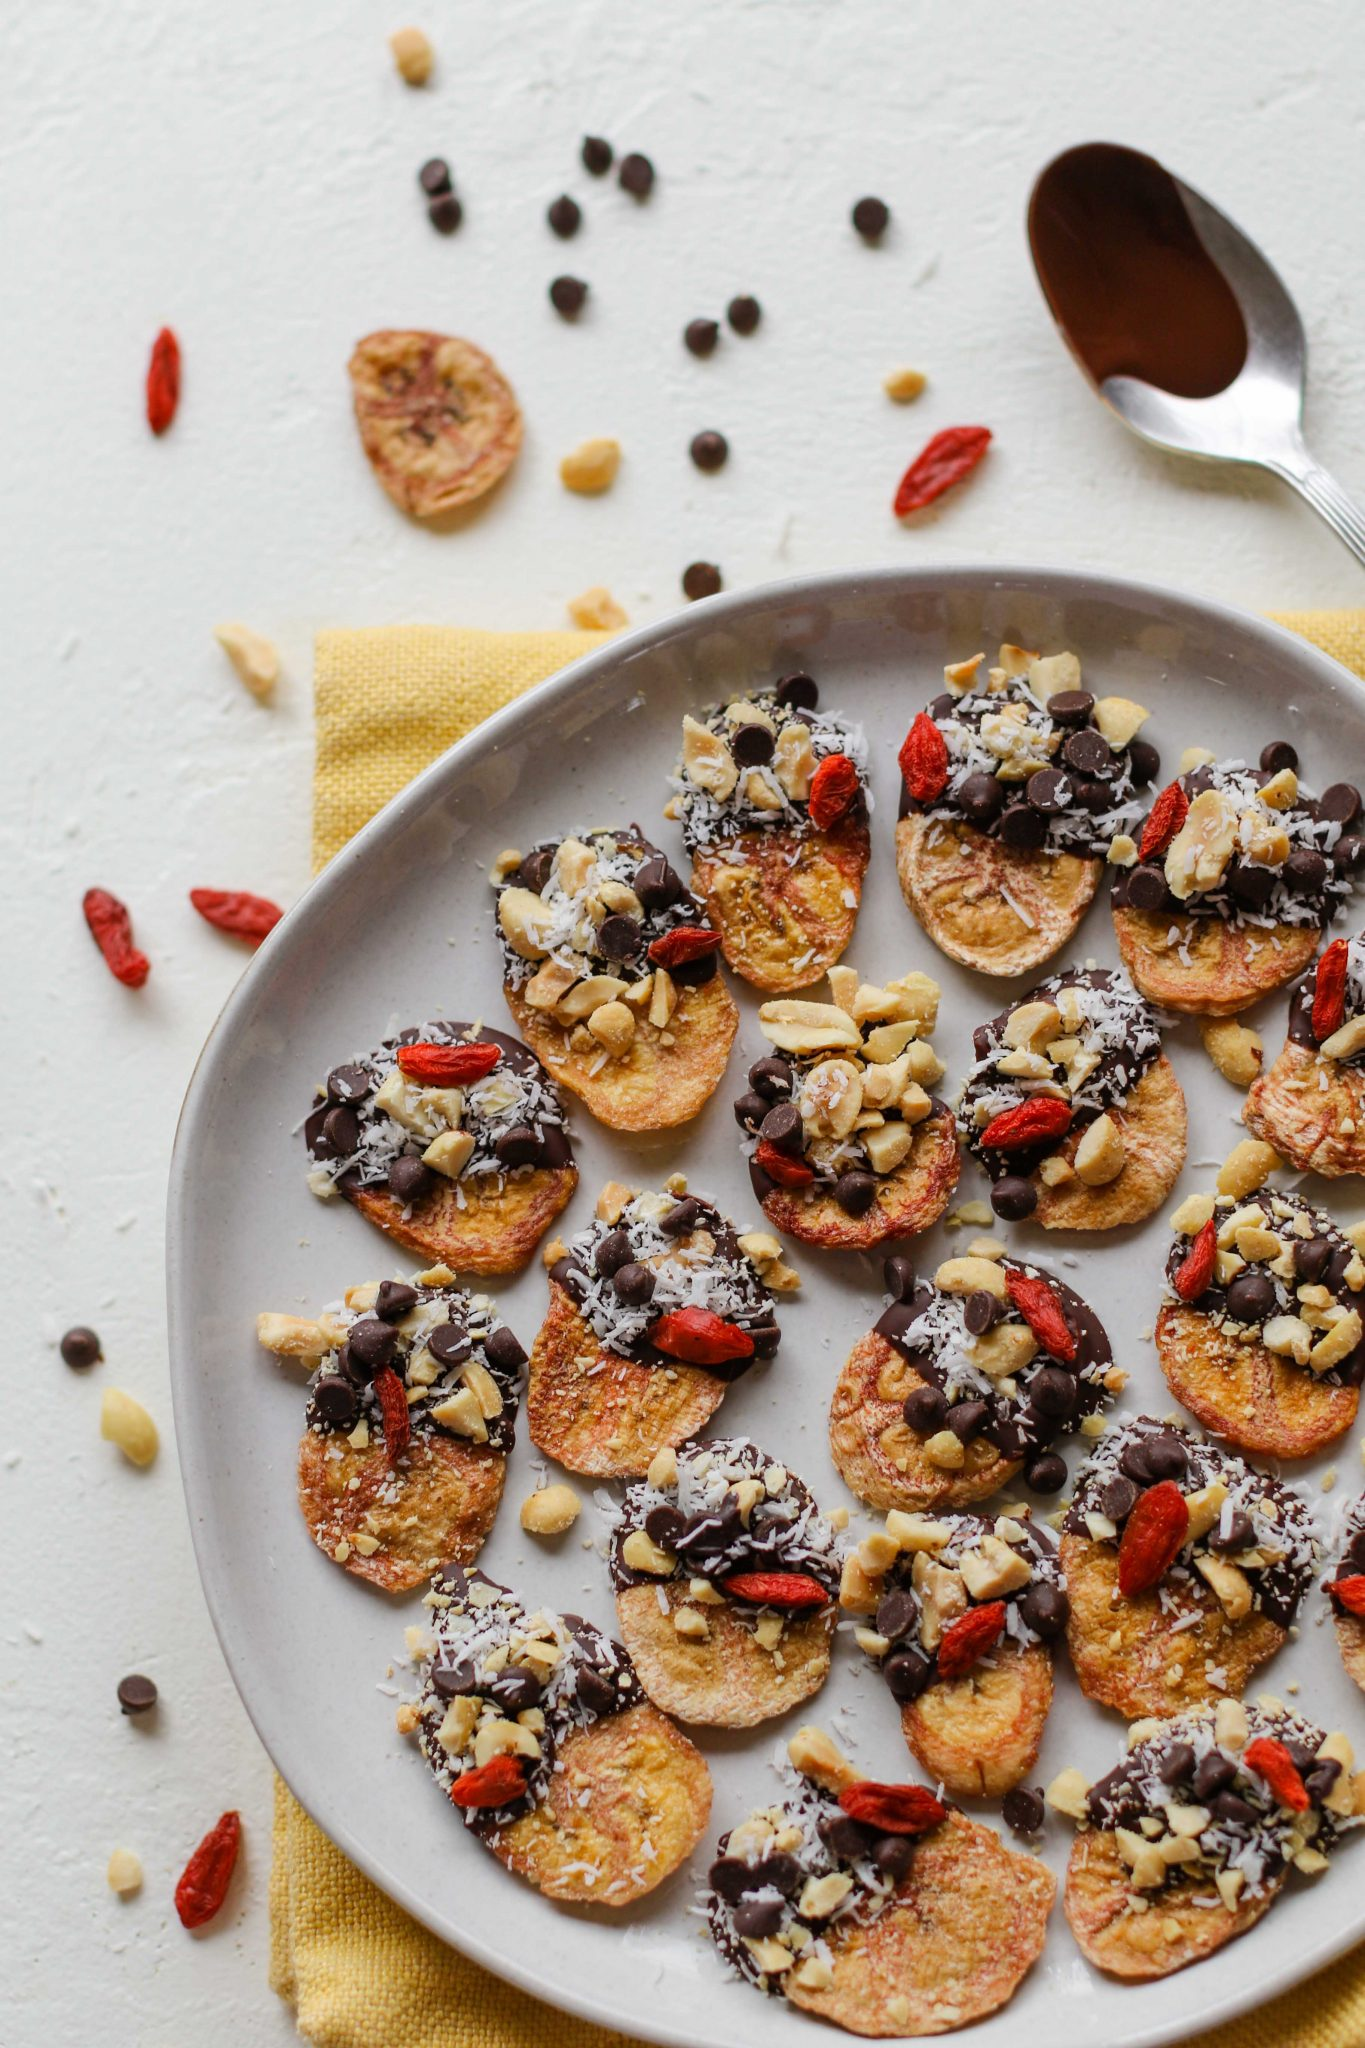 Chunky Monkey Superfood Banana Chip Bites by Flora & Vino